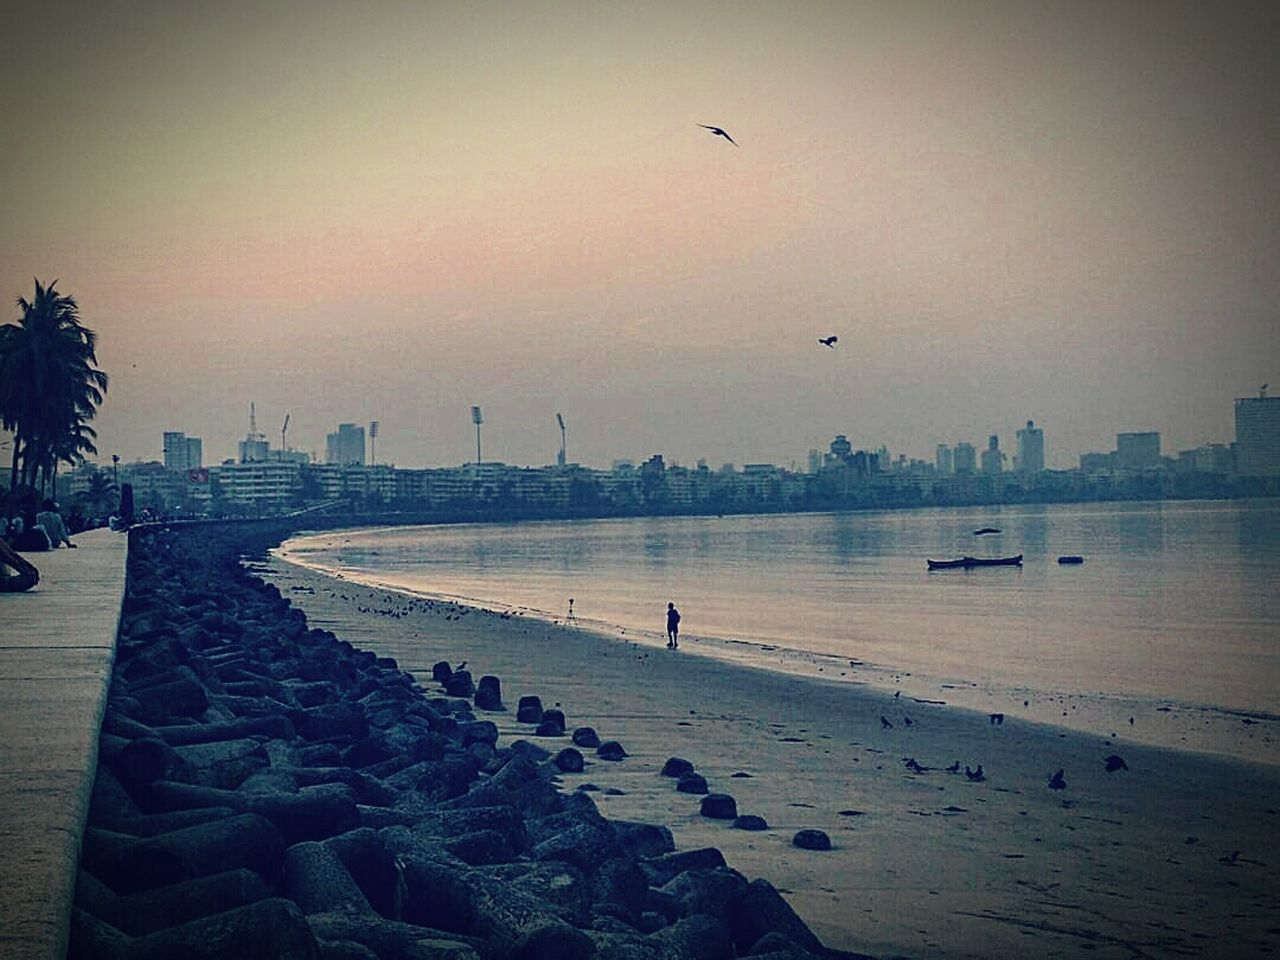 beach, sea, architecture, built structure, real people, water, building exterior, sky, outdoors, sand, sunset, nature, travel destinations, skyscraper, city, beauty in nature, vacations, day, full length, bird, flying, clear sky, scenics, men, one person, people